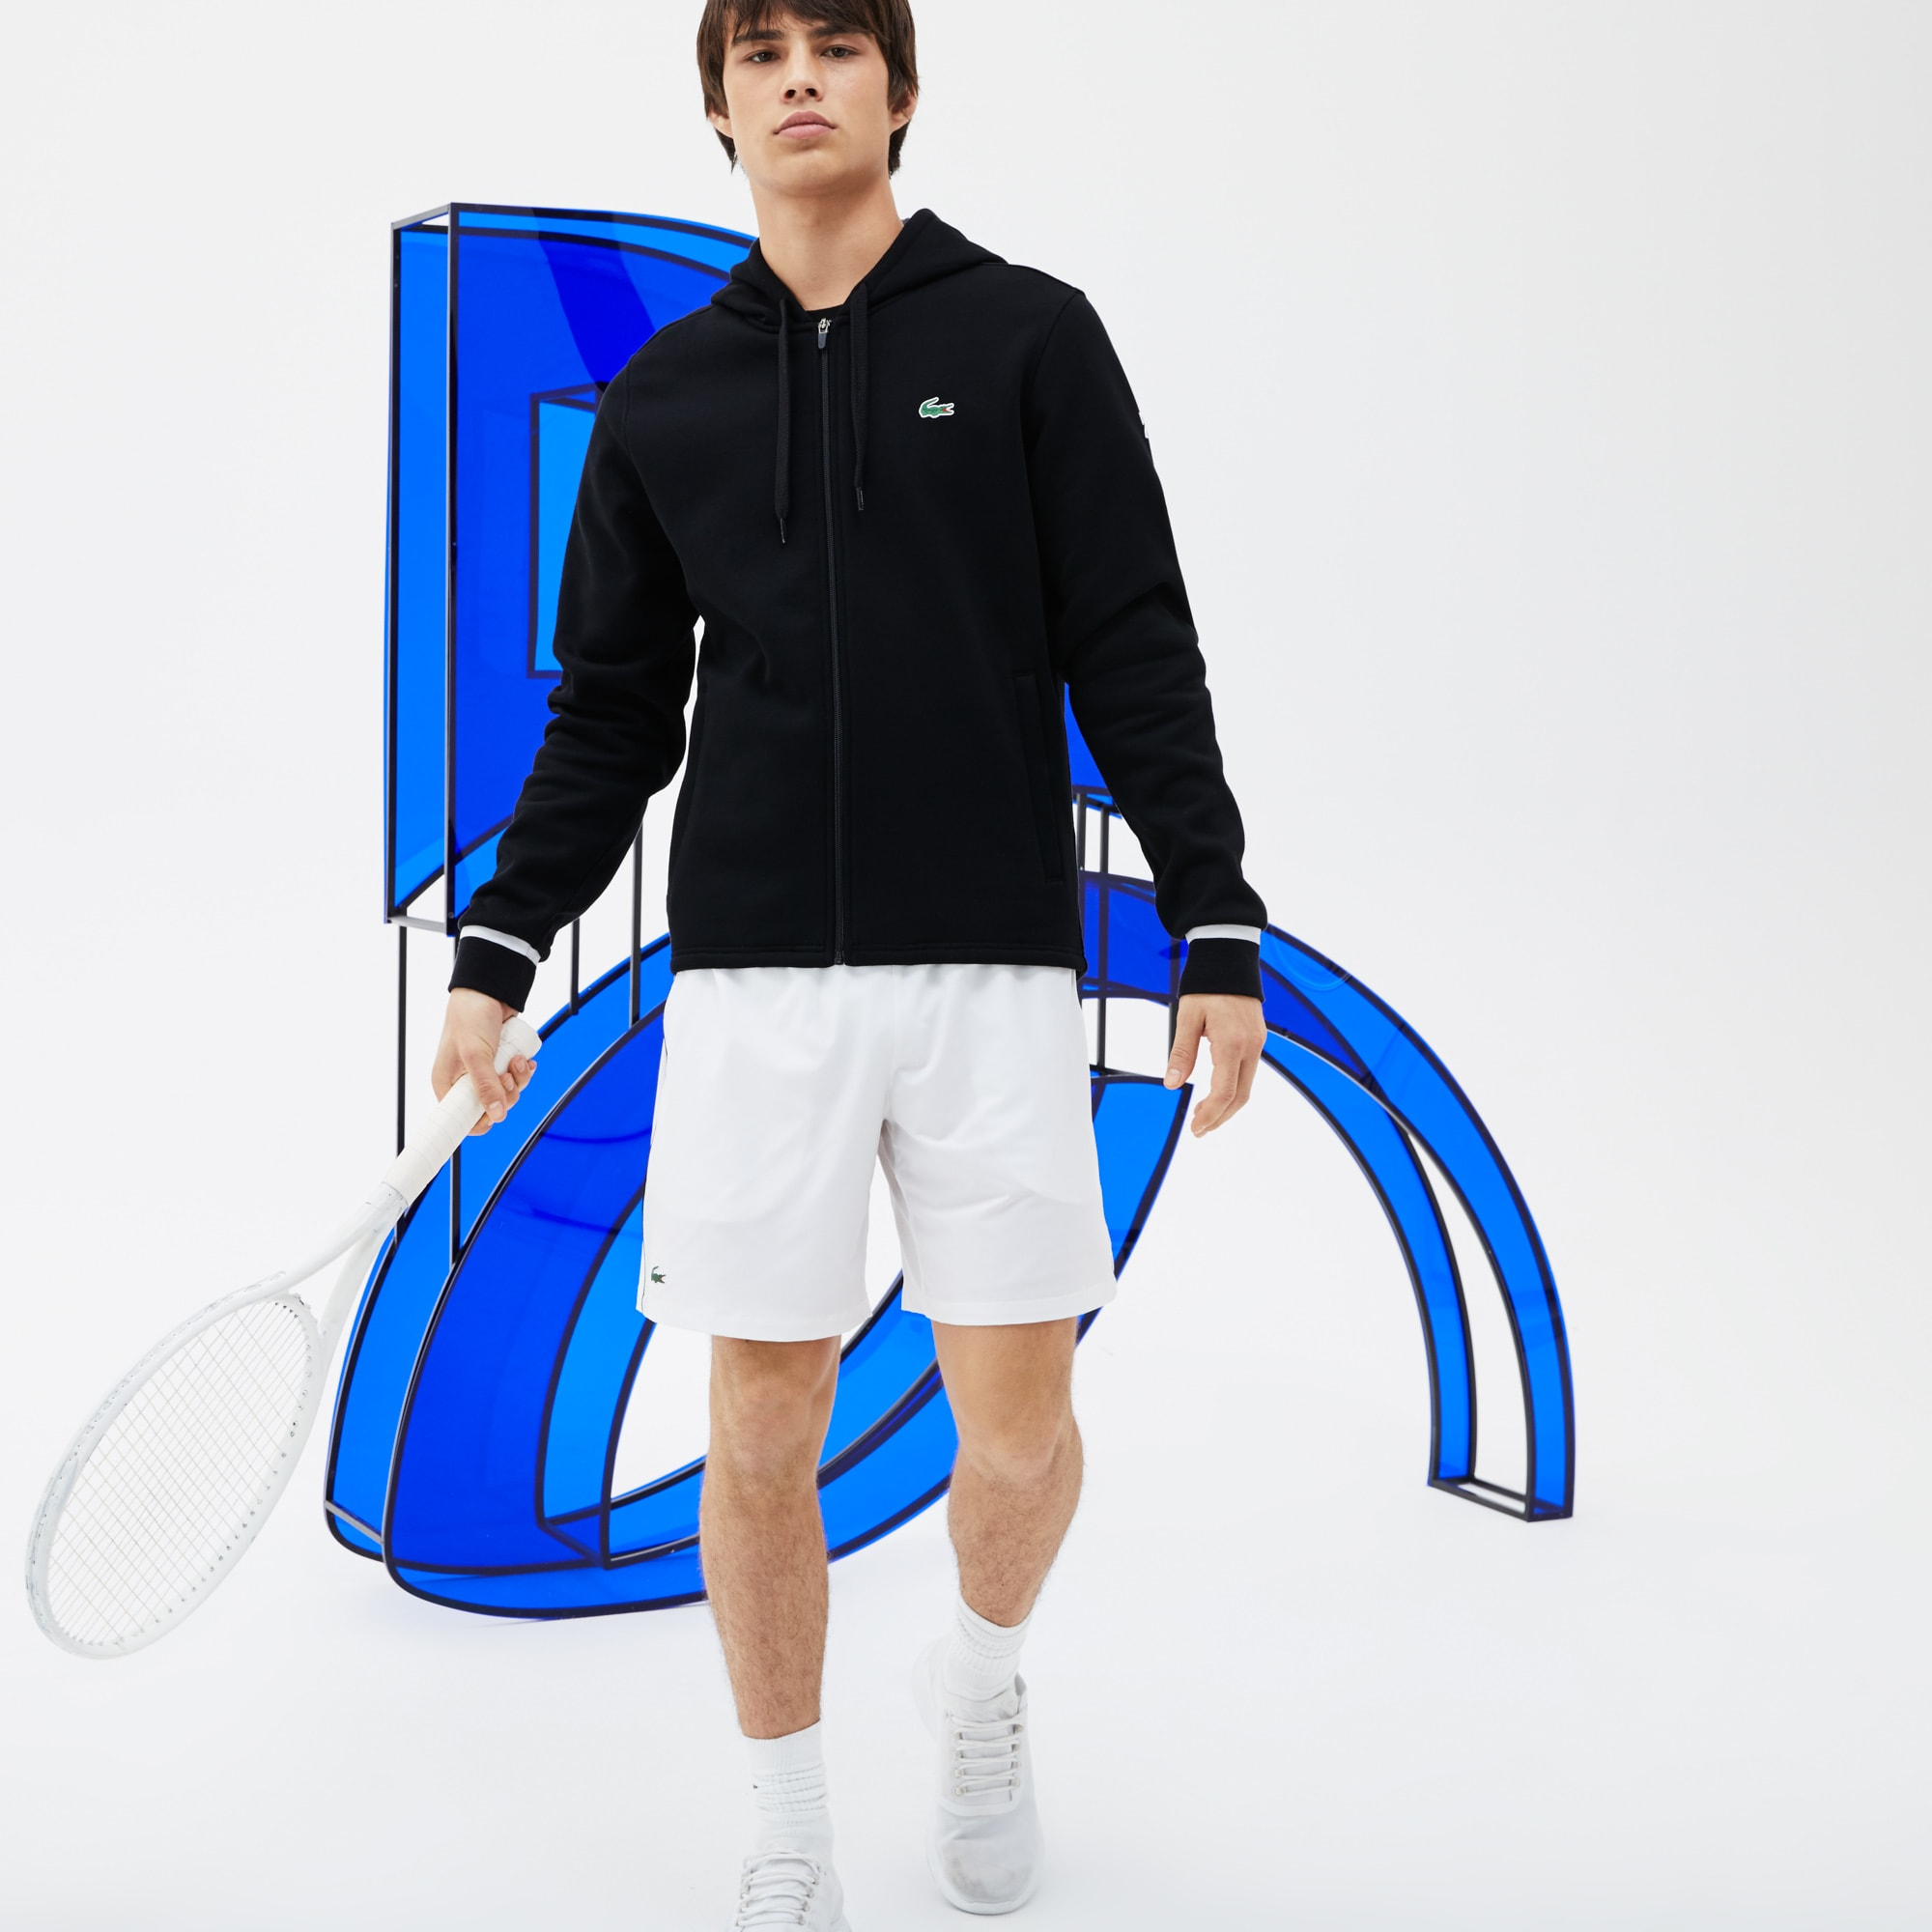 Men's SPORT Zip Sweatshirt - Novak Djokovic Supporter Collection